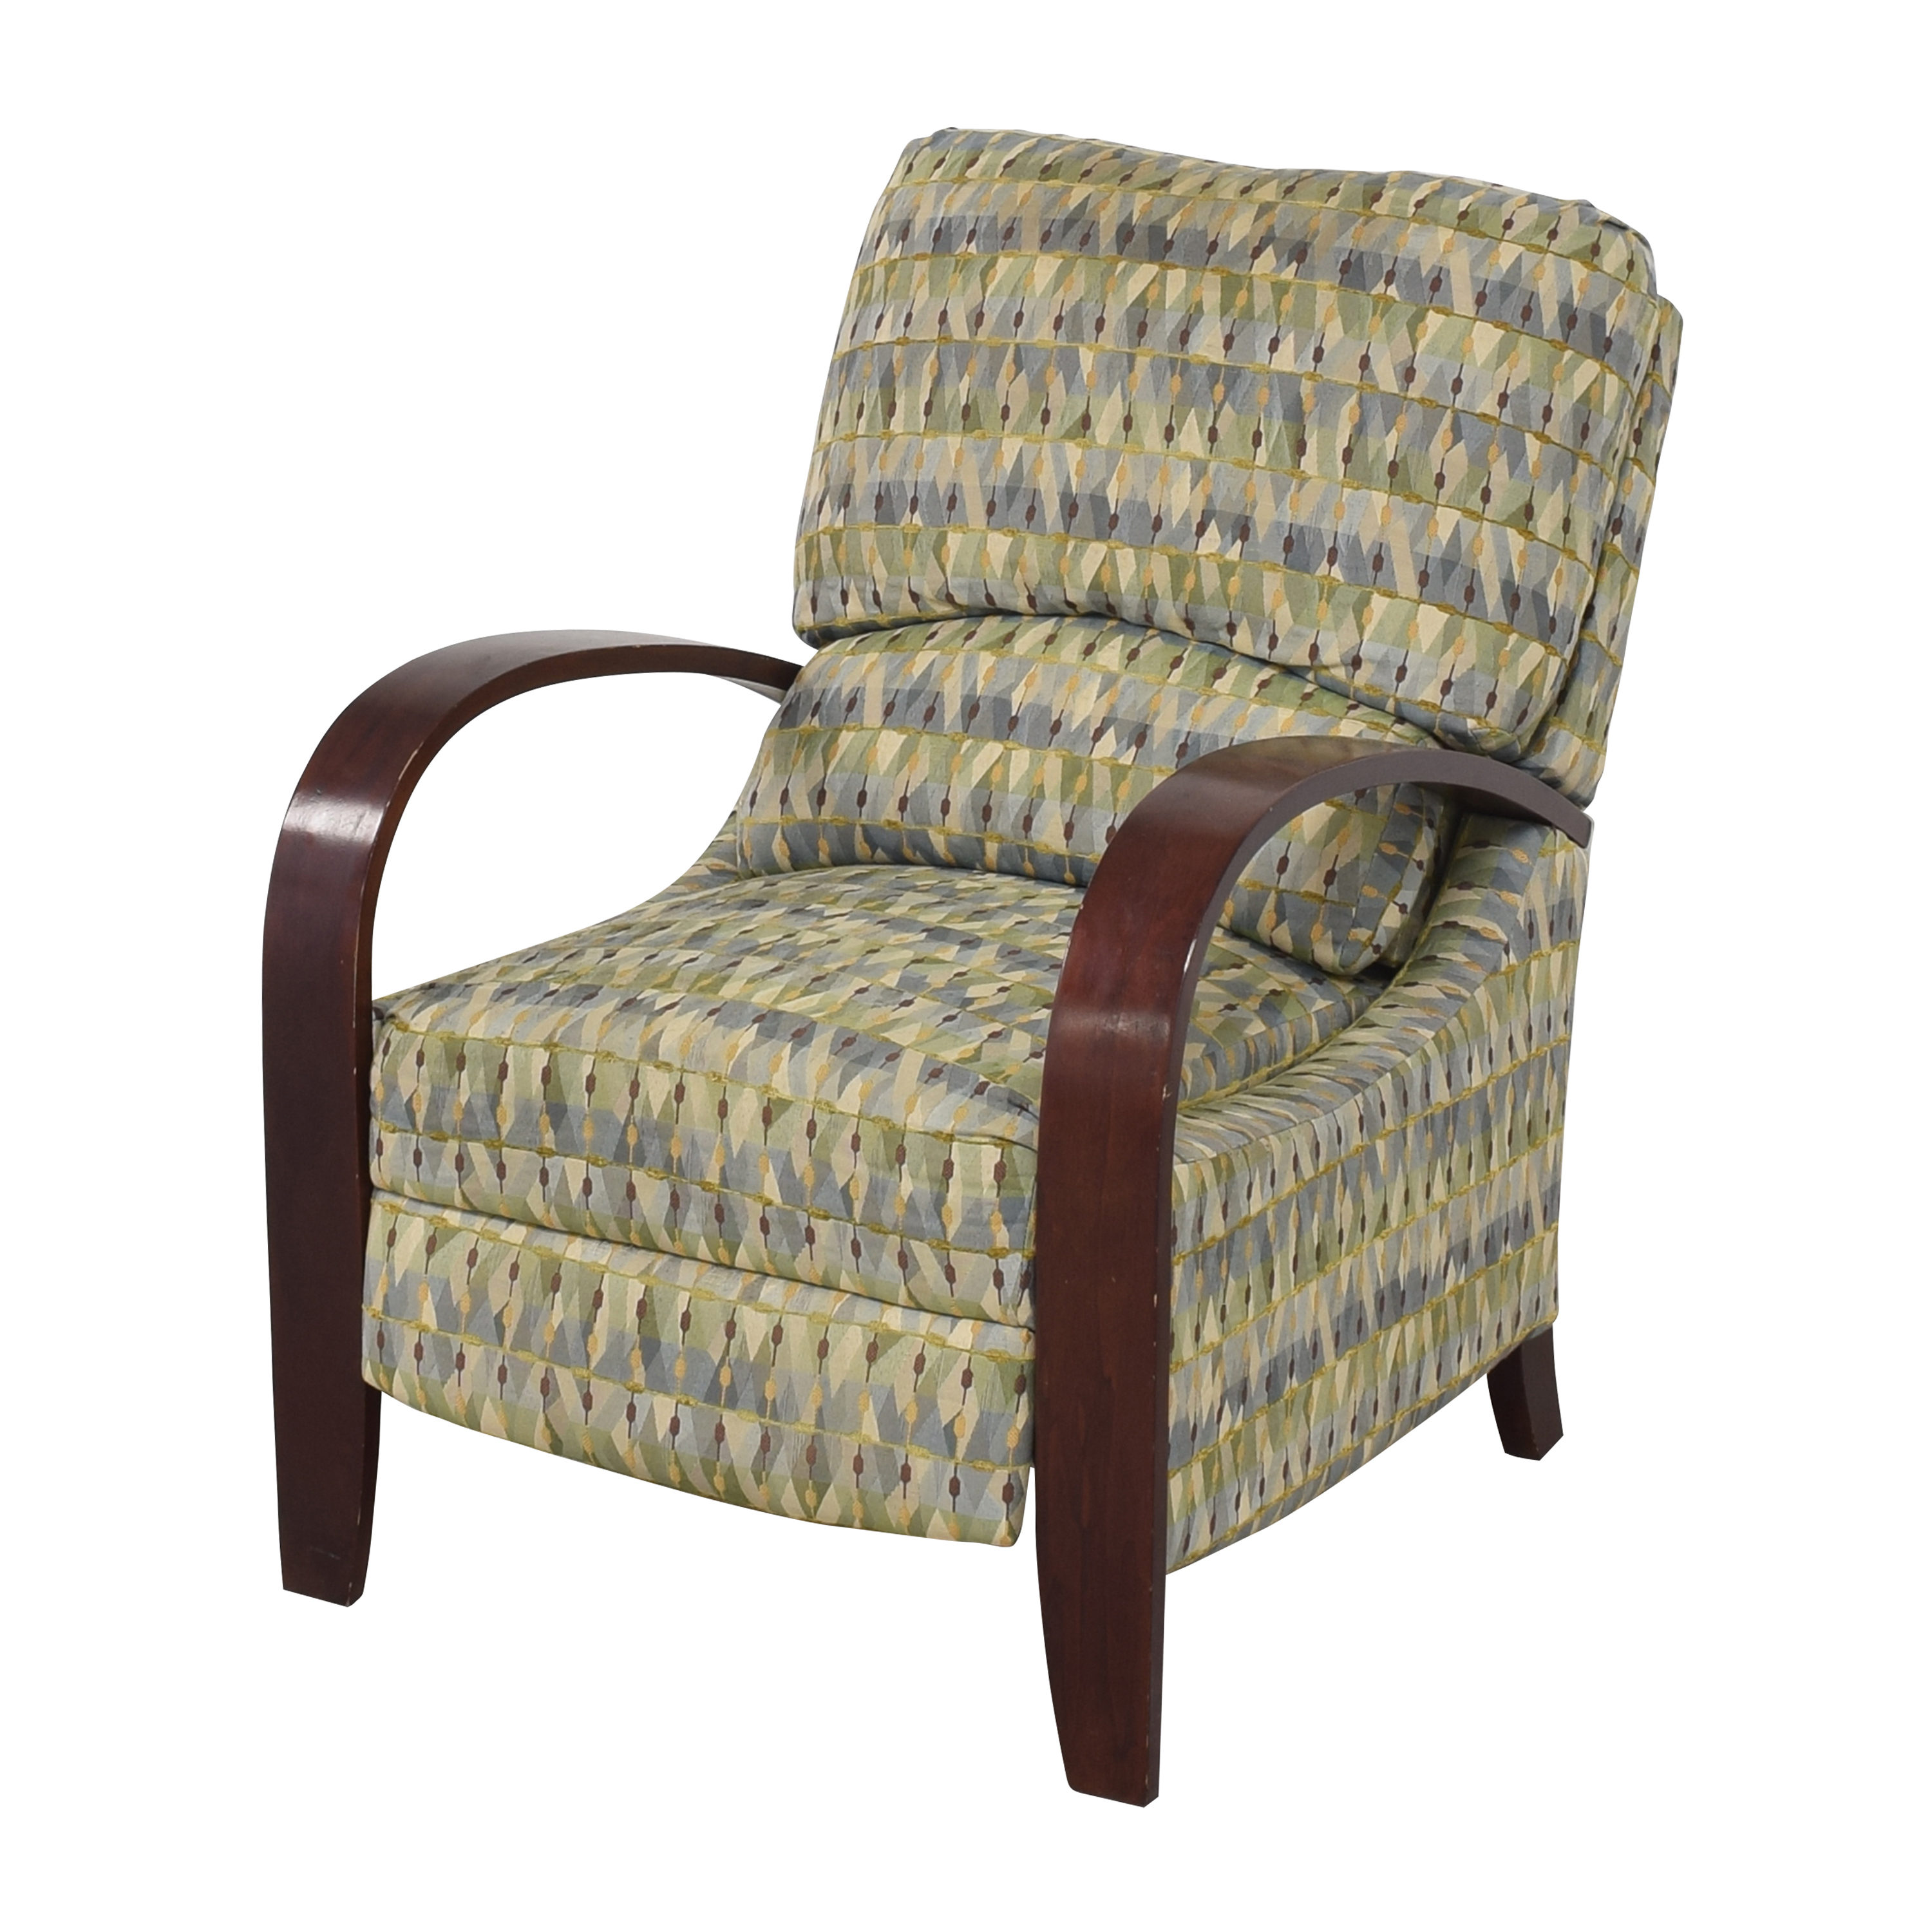 Raymour & Flanigan Raymour & Flanigan Patterned Recliner for sale